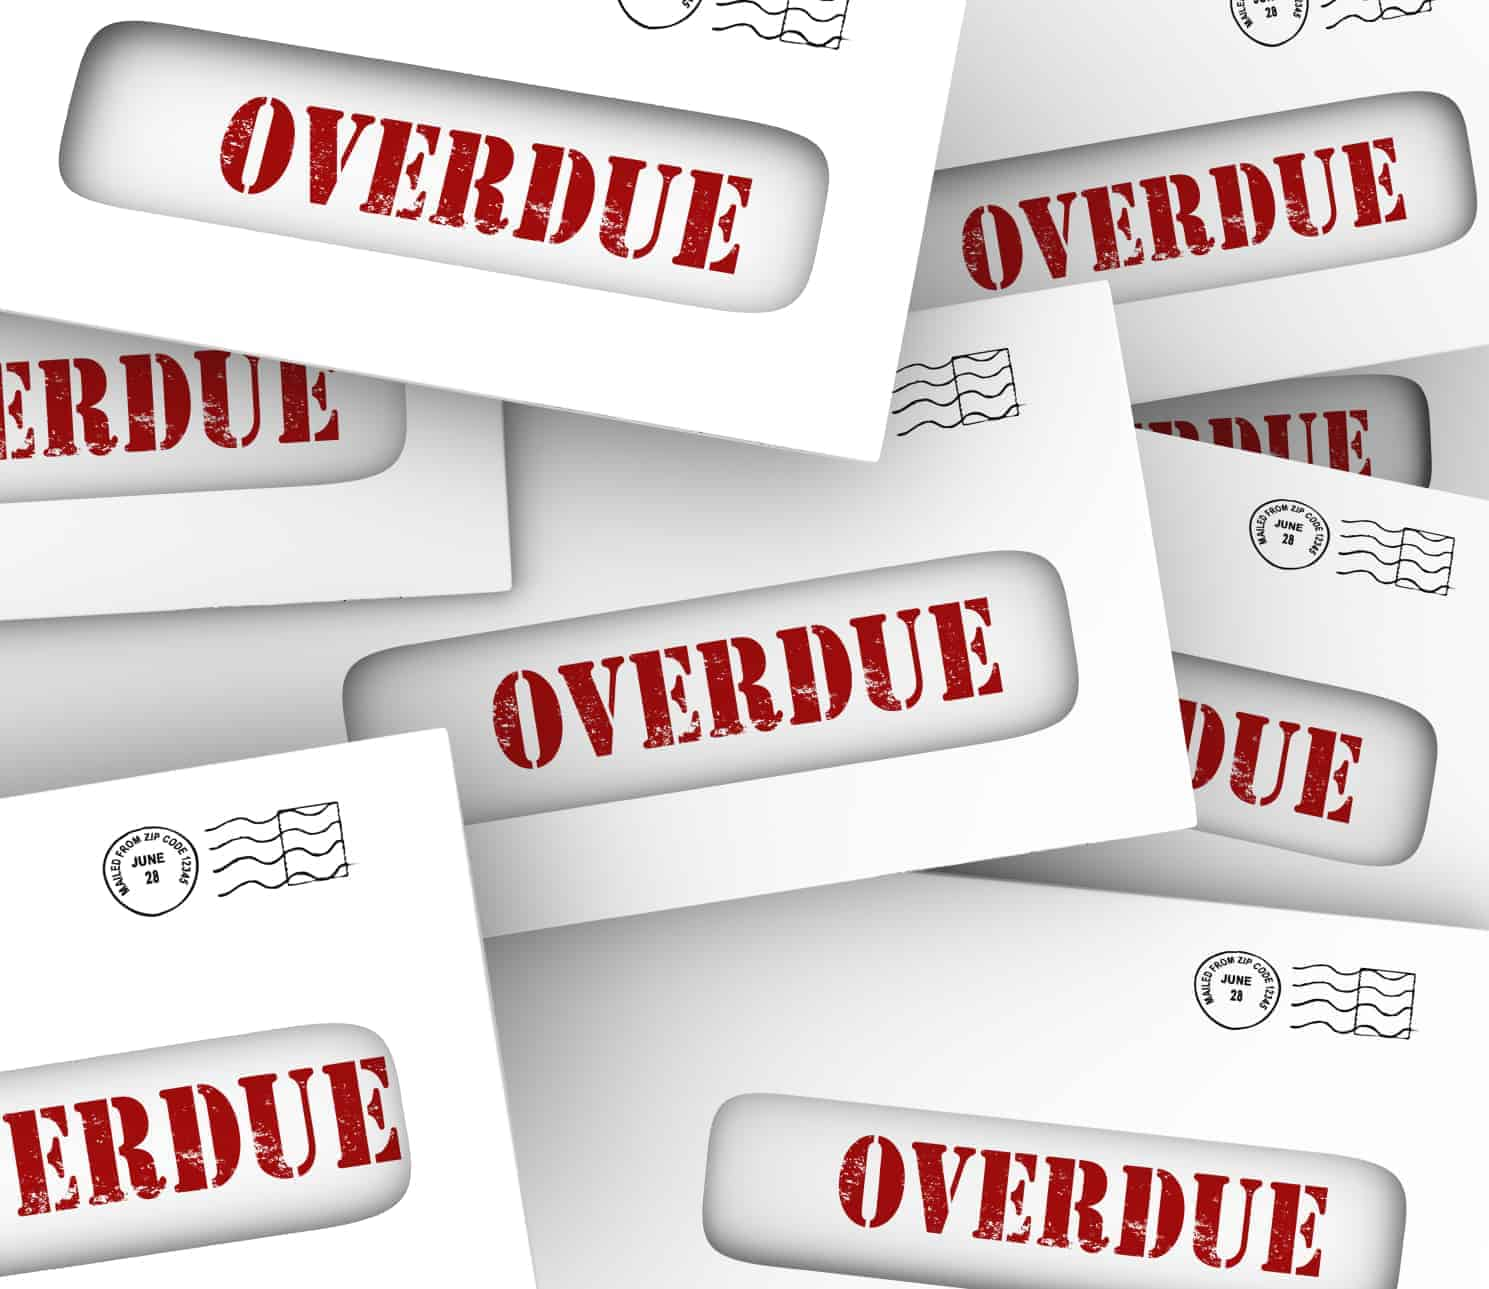 Overdue debt quickly offsets any positive steps you take when building credit